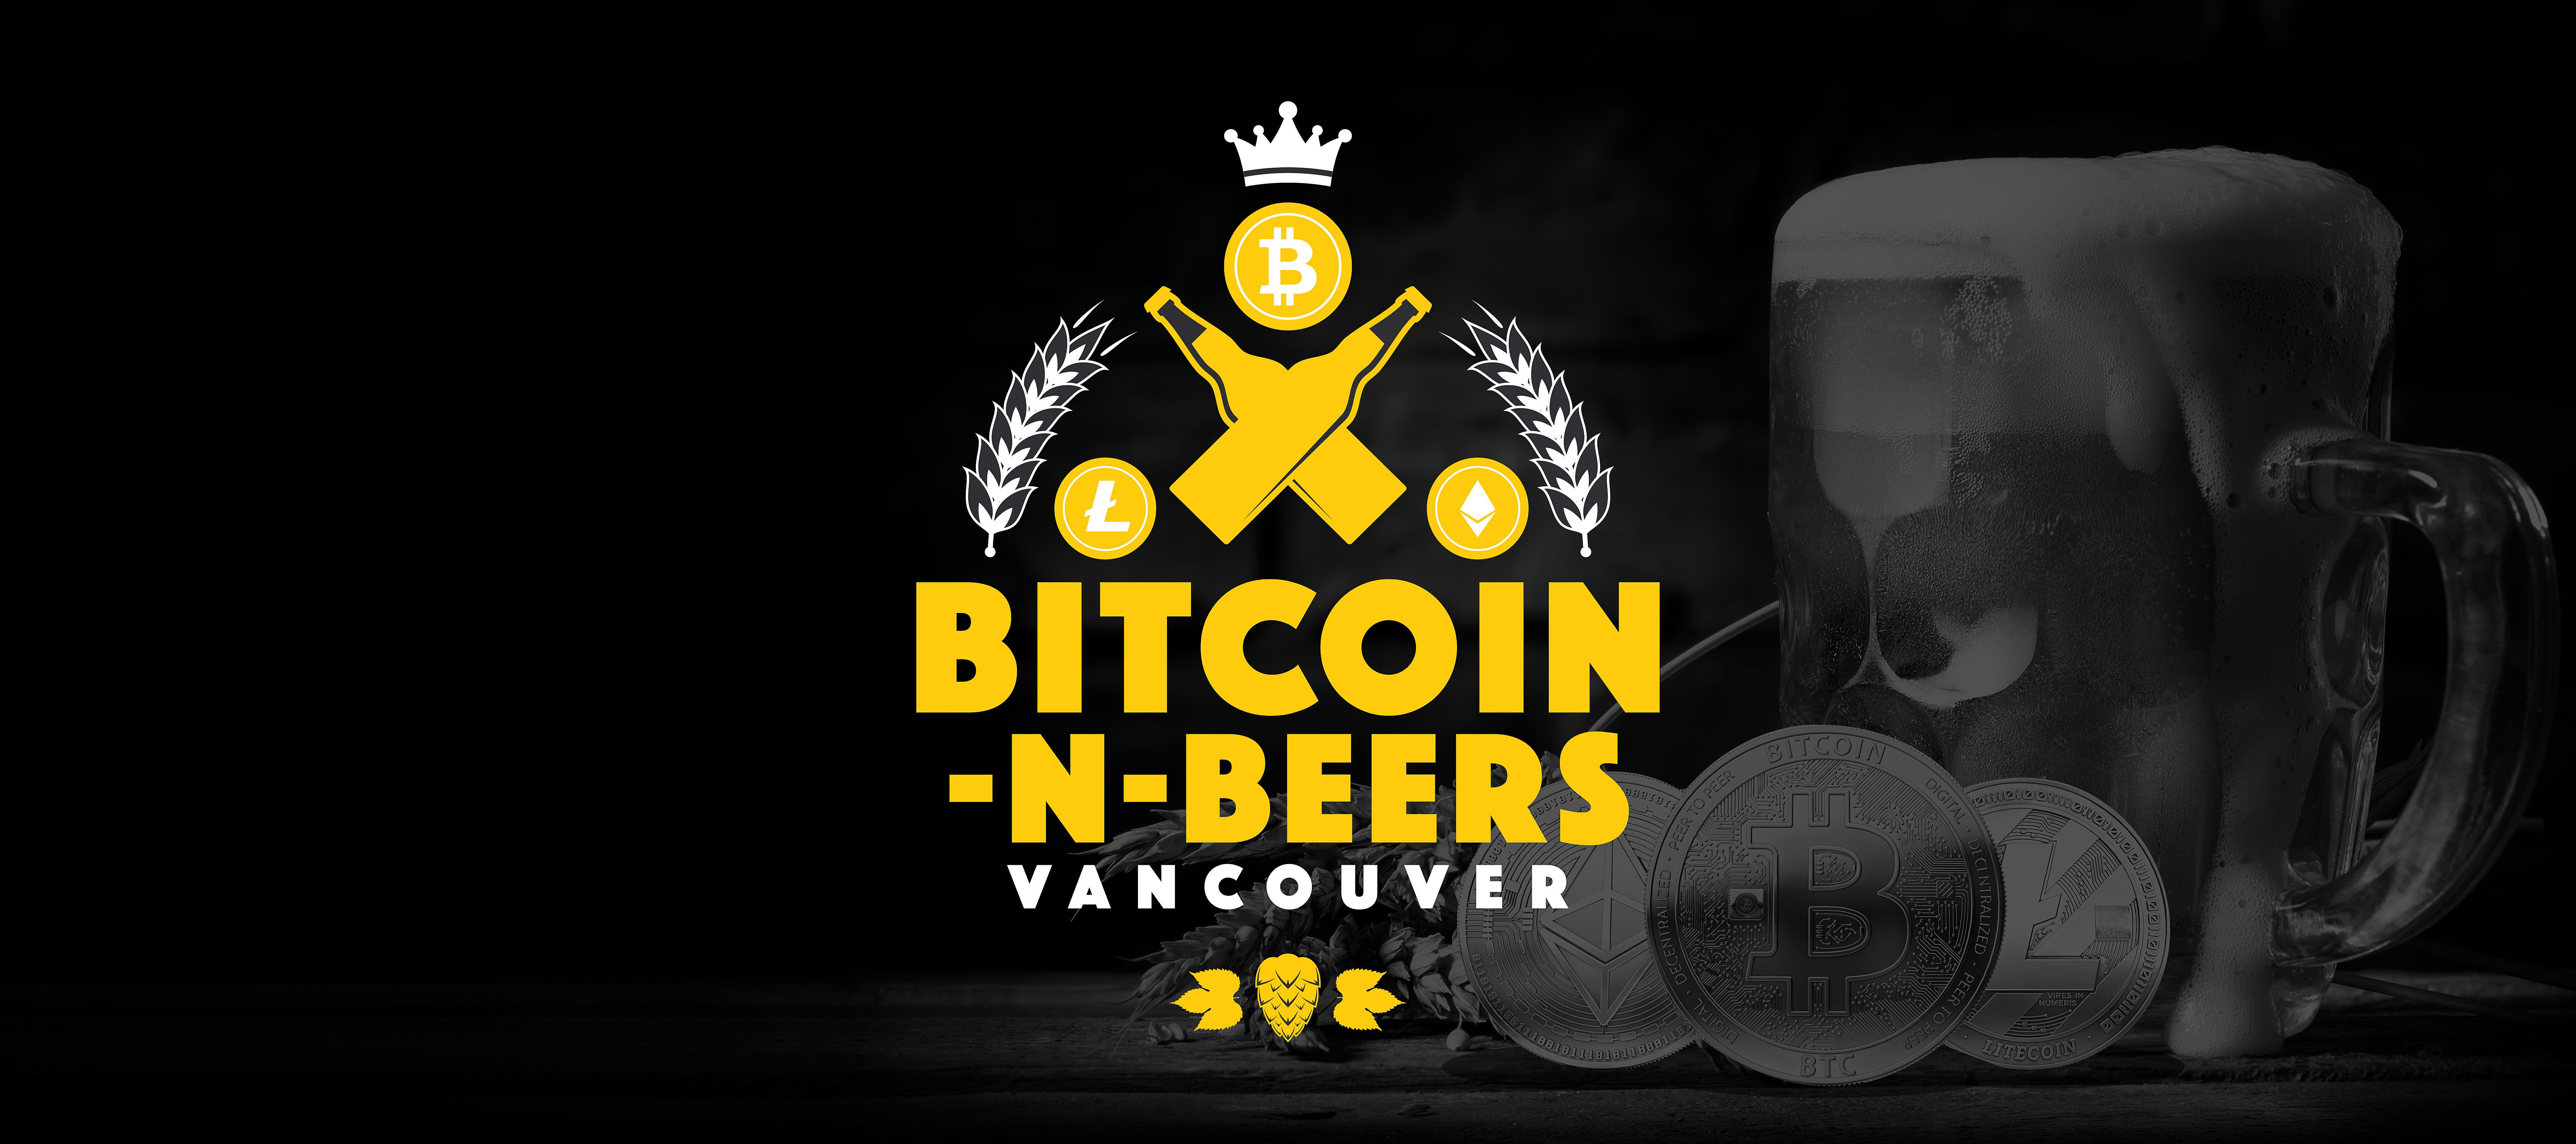 Bitcoin-N-Beers Vancouver